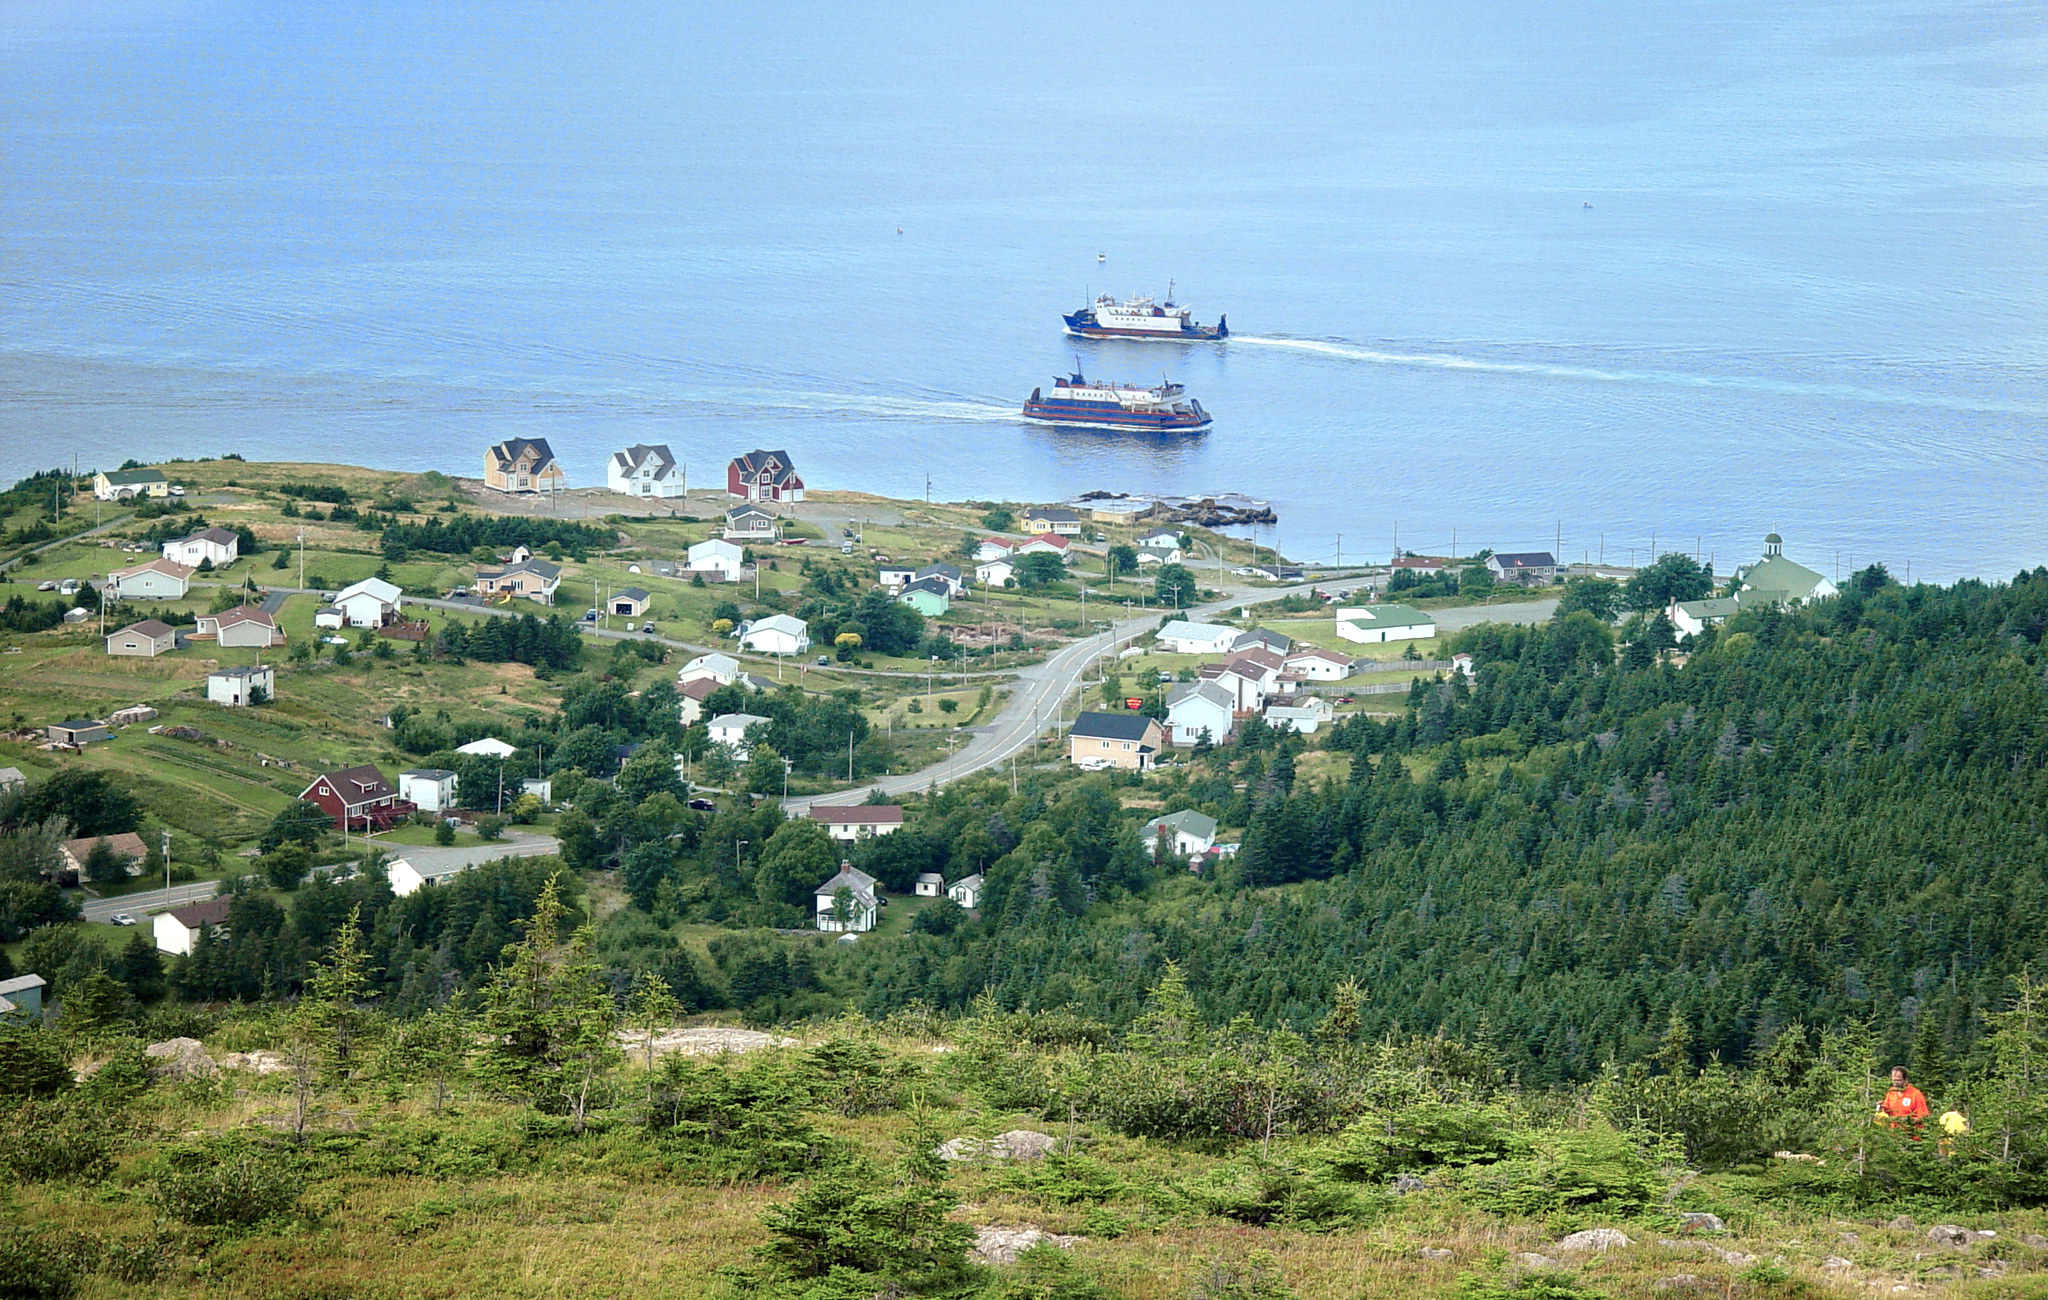 File:Portugal Cove, NL, Bell Island ferries.JPG - Wikipedia, the ...